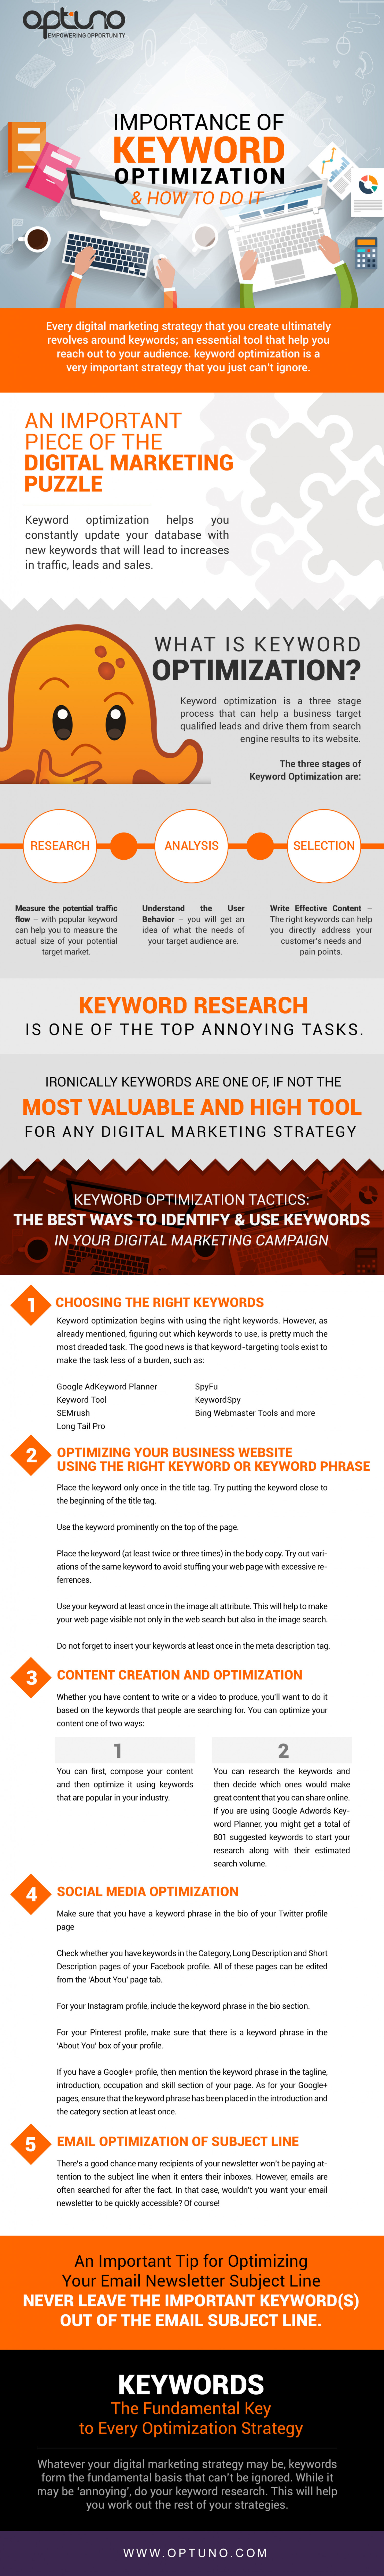 Importance of Keyword Optimization & How To Do It Infographic